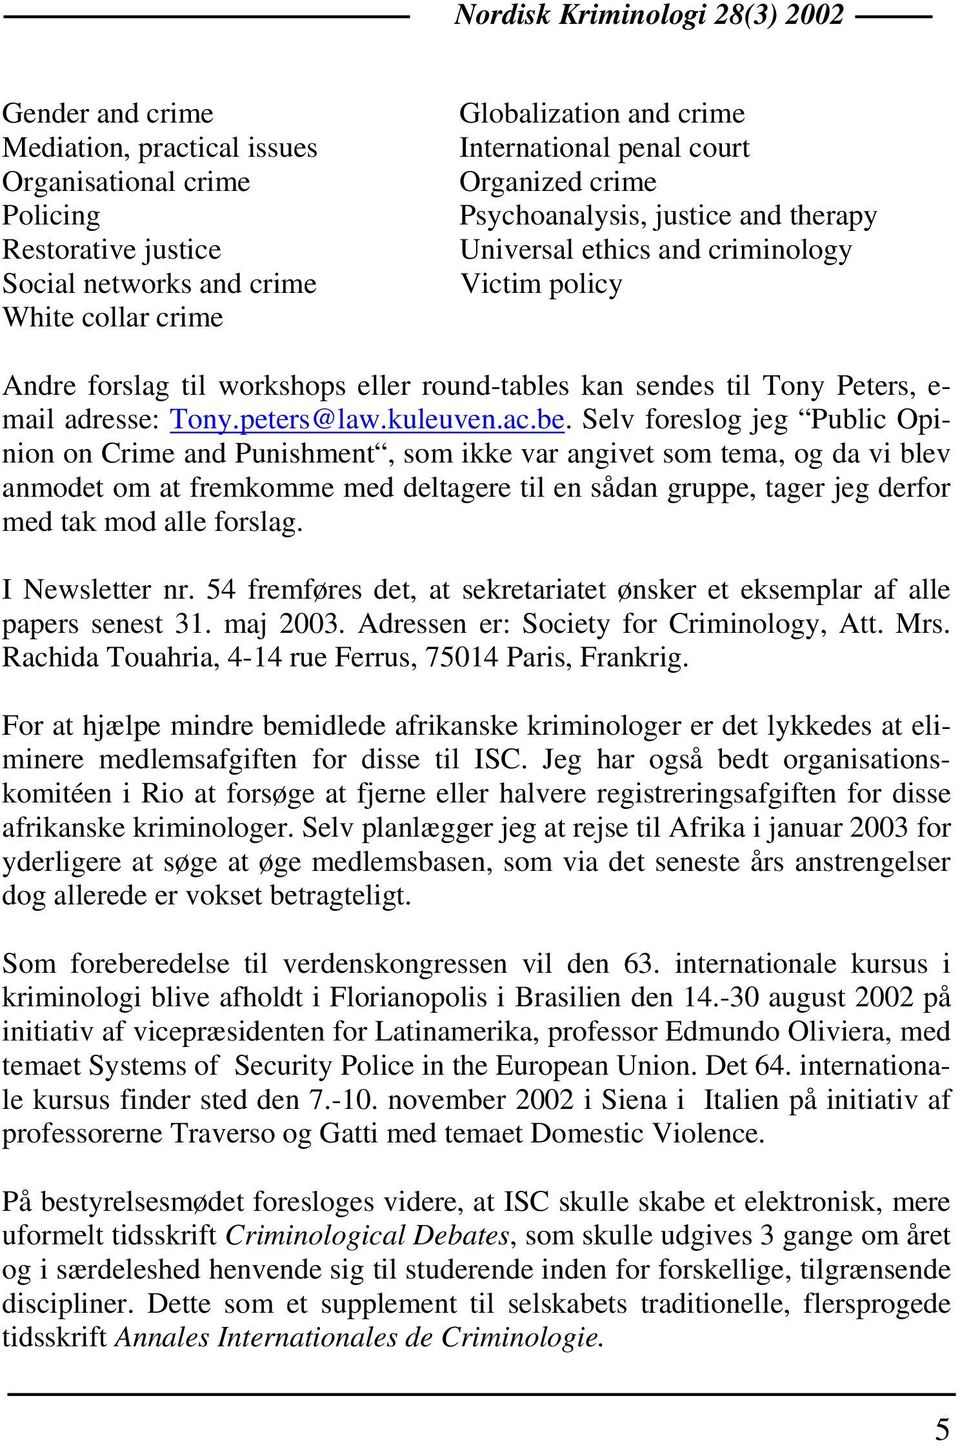 e- mail adresse: Tony.peters@law.kuleuven.ac.be.